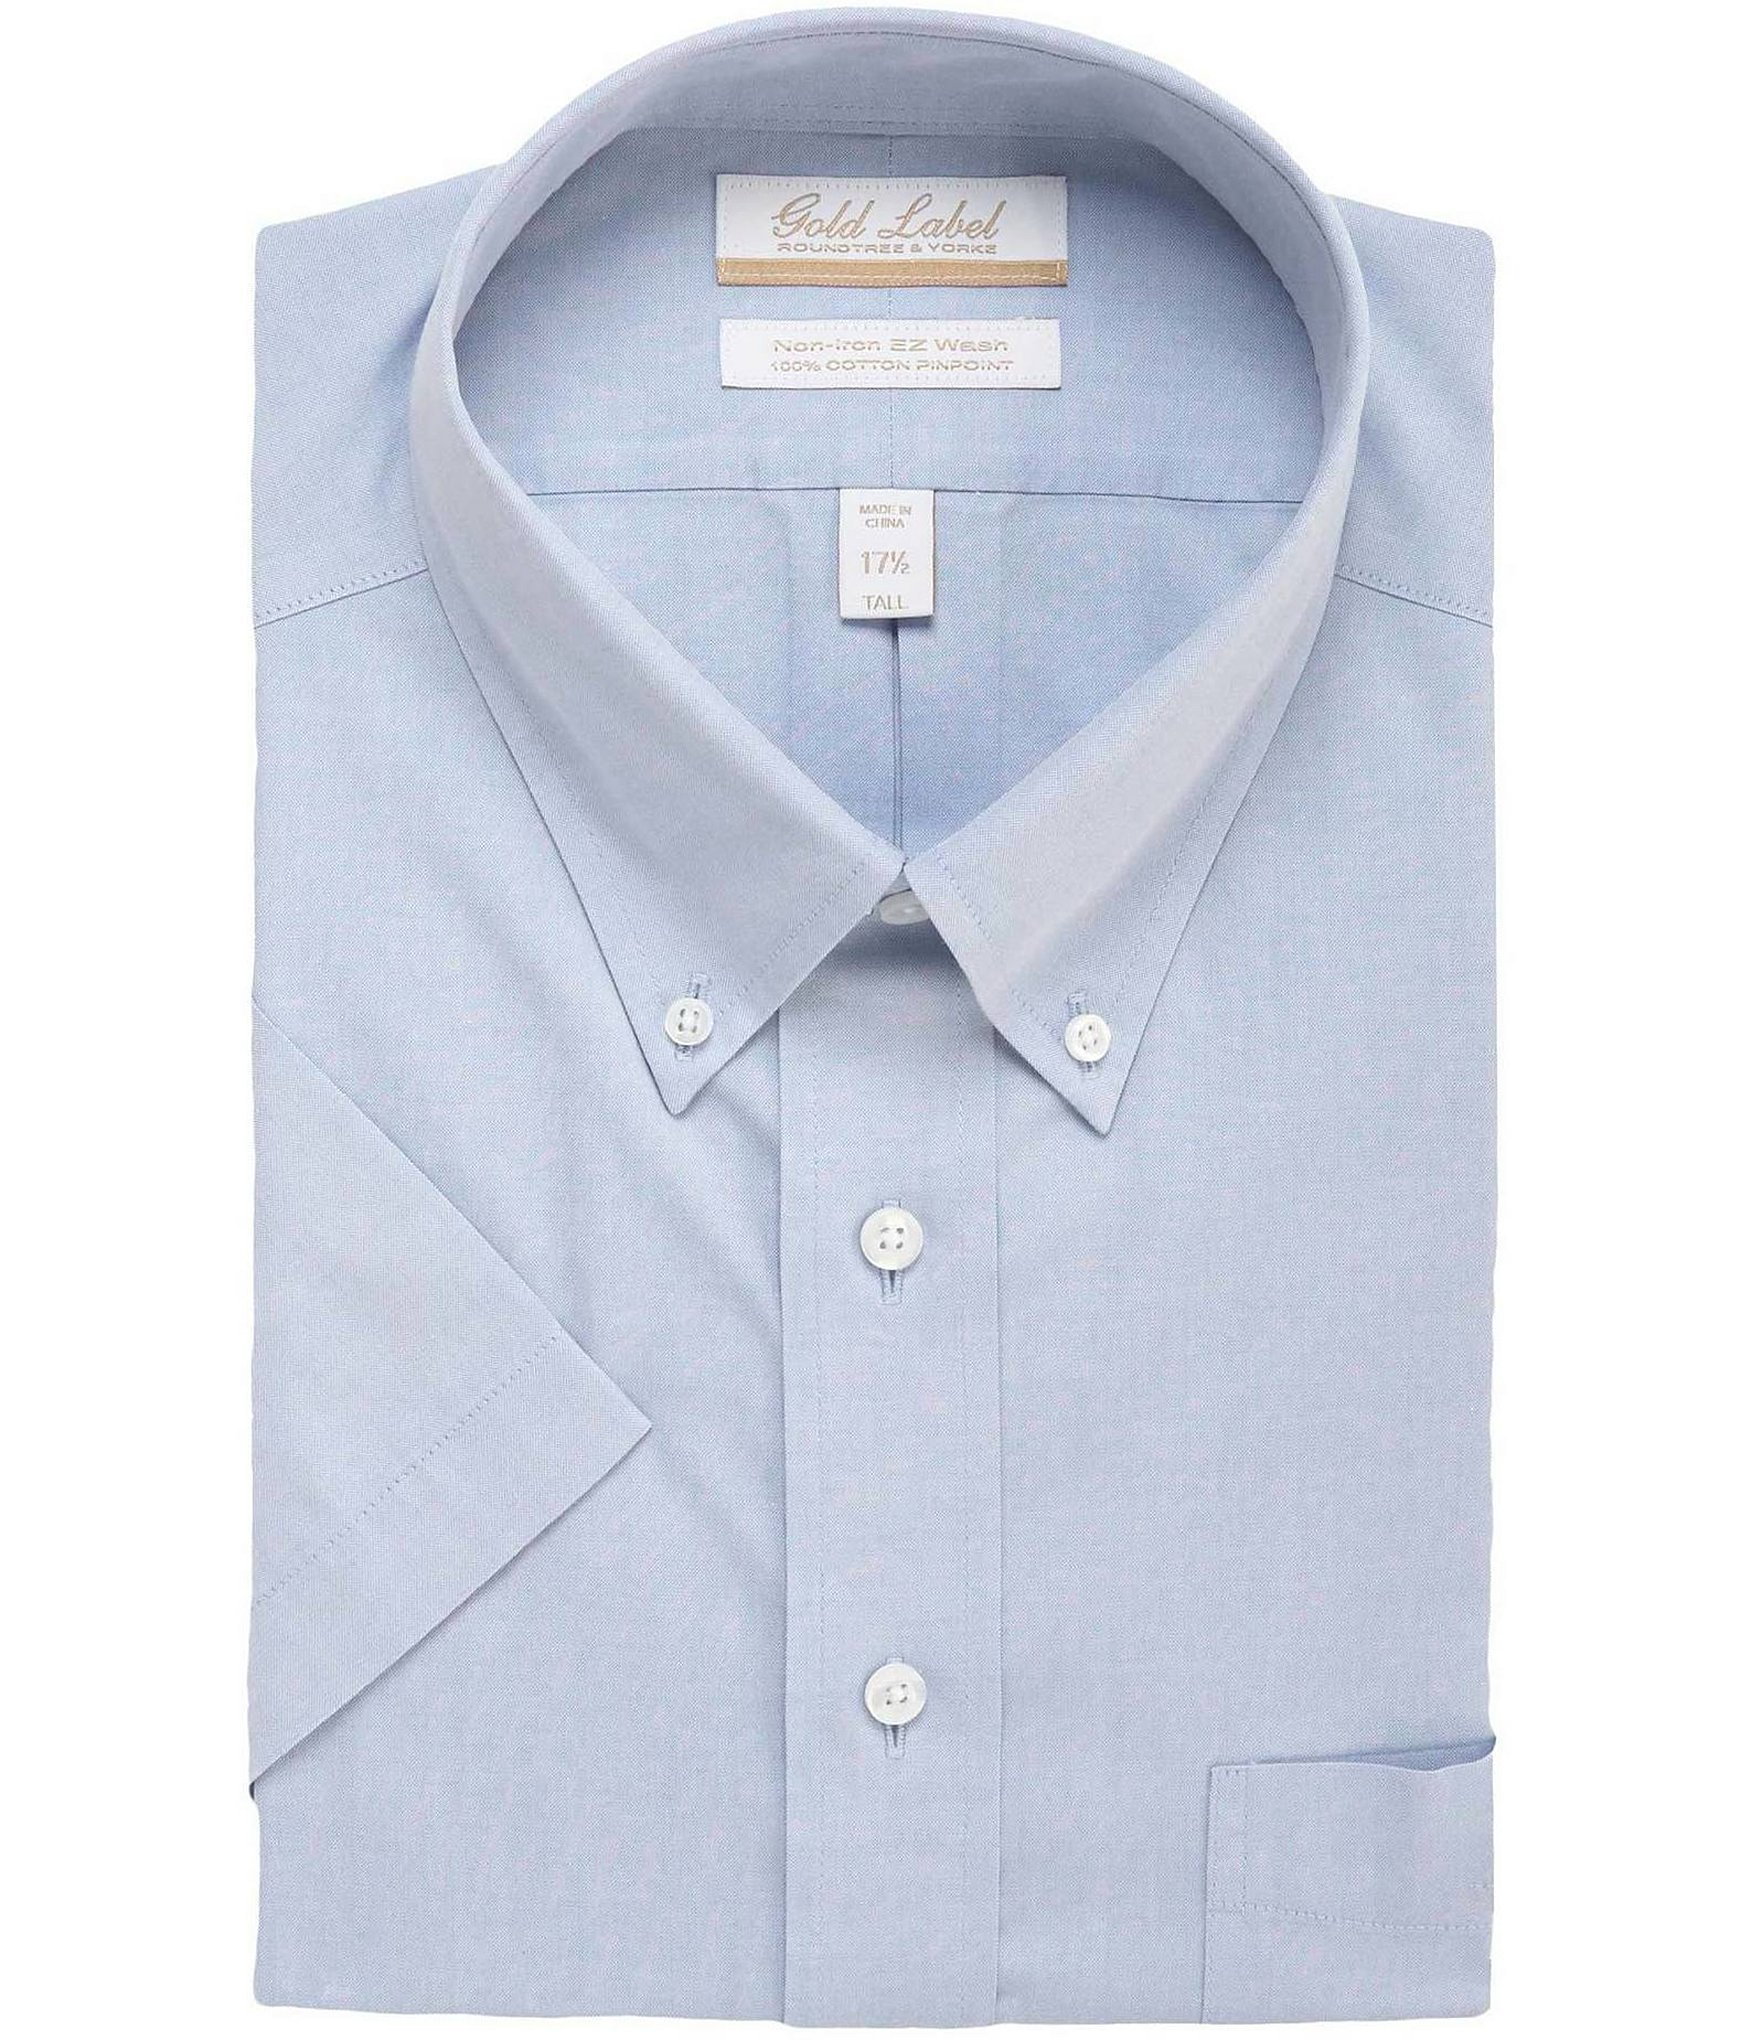 Mens Button Down Collar Dress Shirts Dillards